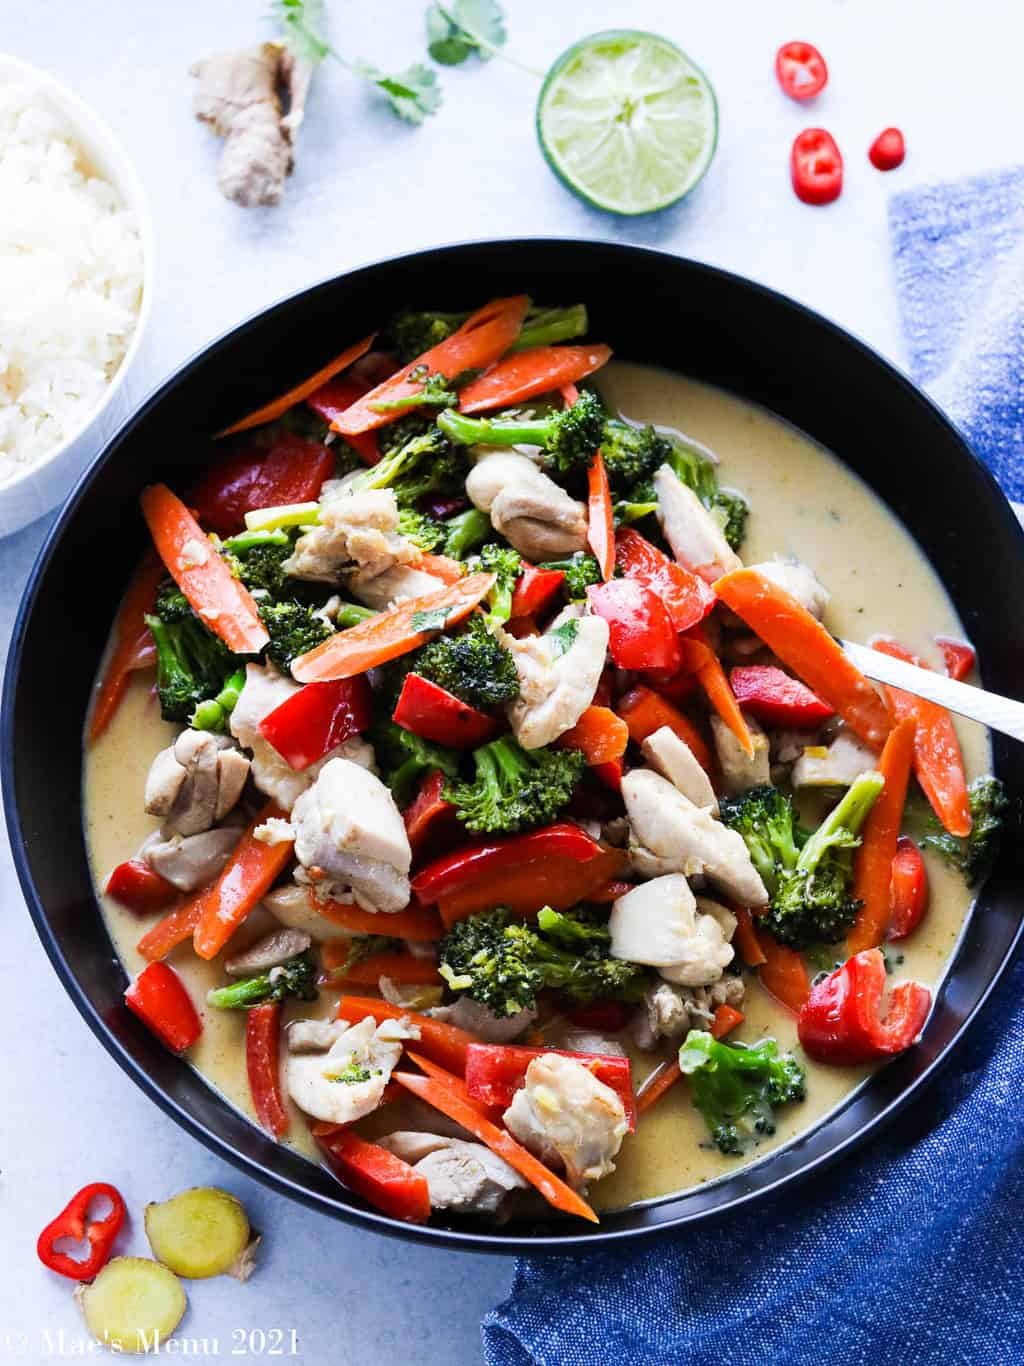 A vertical shot of a large black bowl of thai green chicken curry